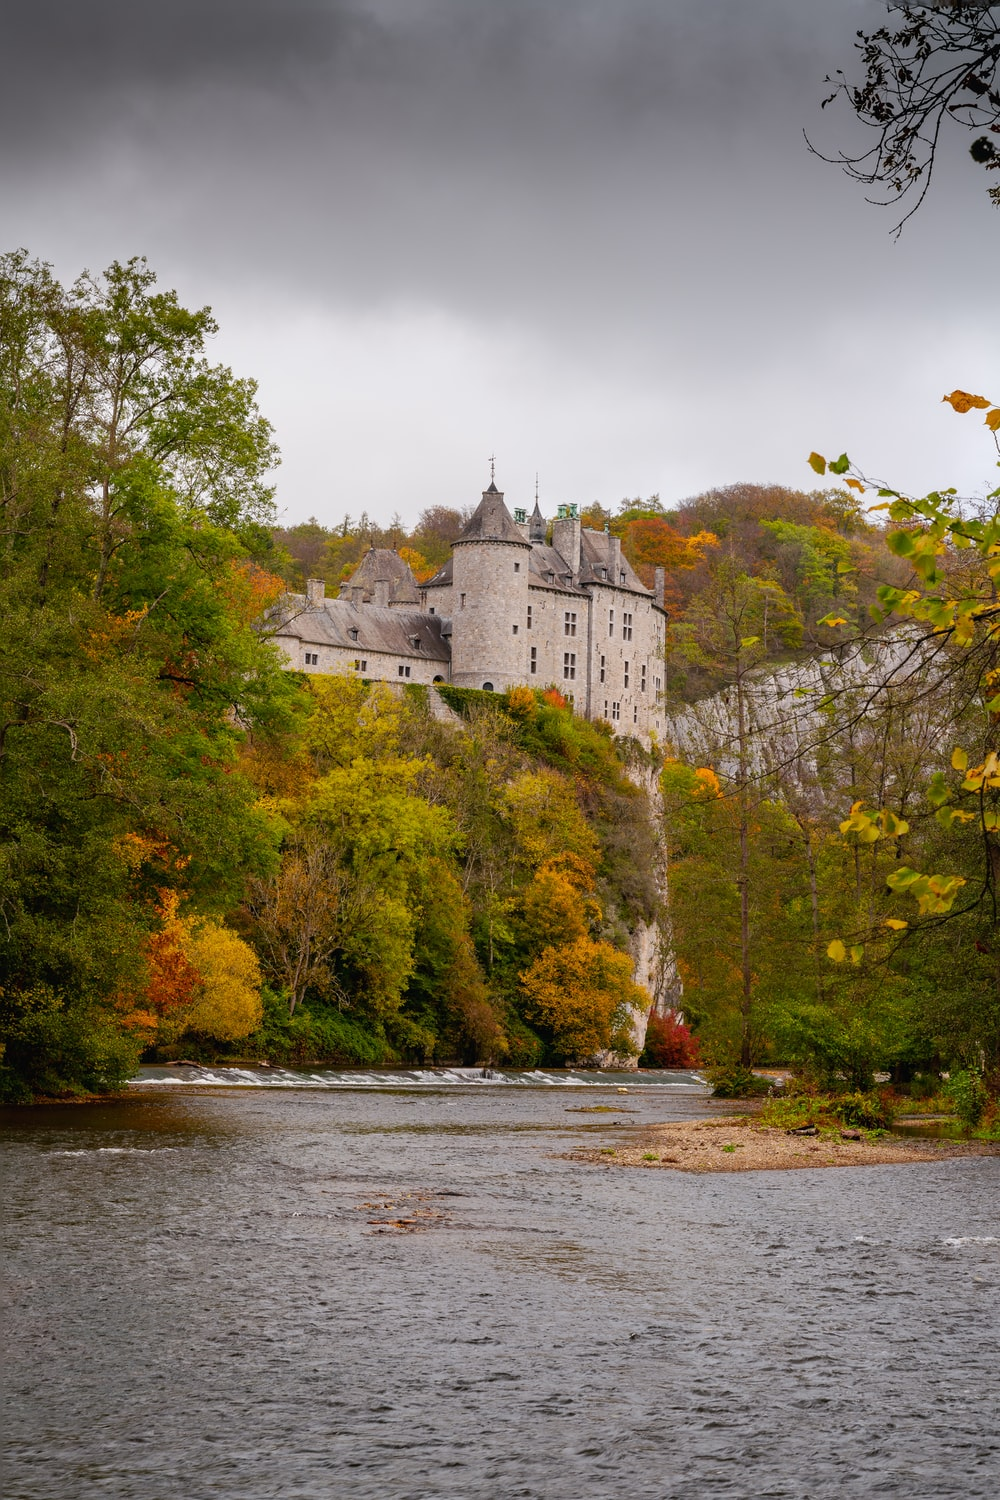 white and gray castle on green trees beside river during daytime